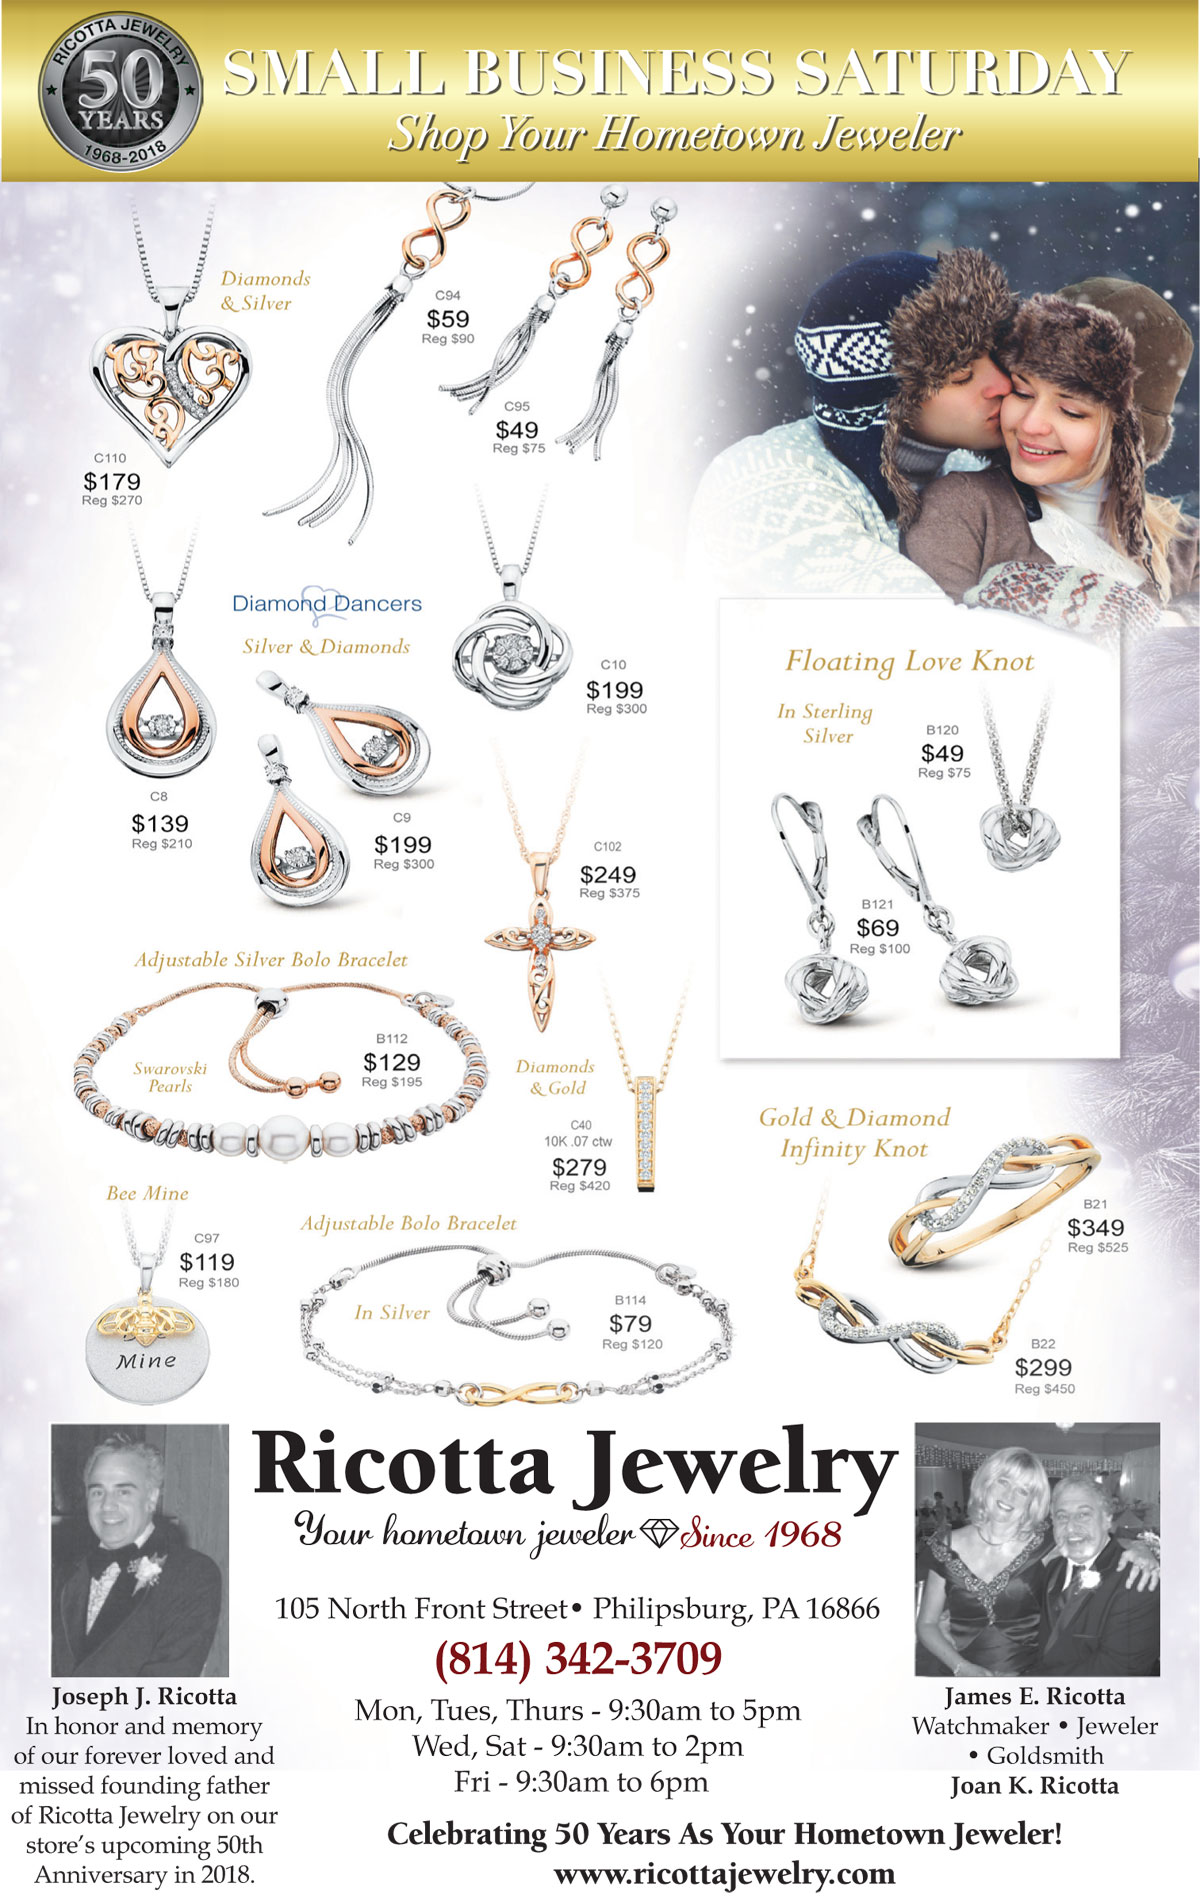 50 years hometown jeweler Jim Ricotta